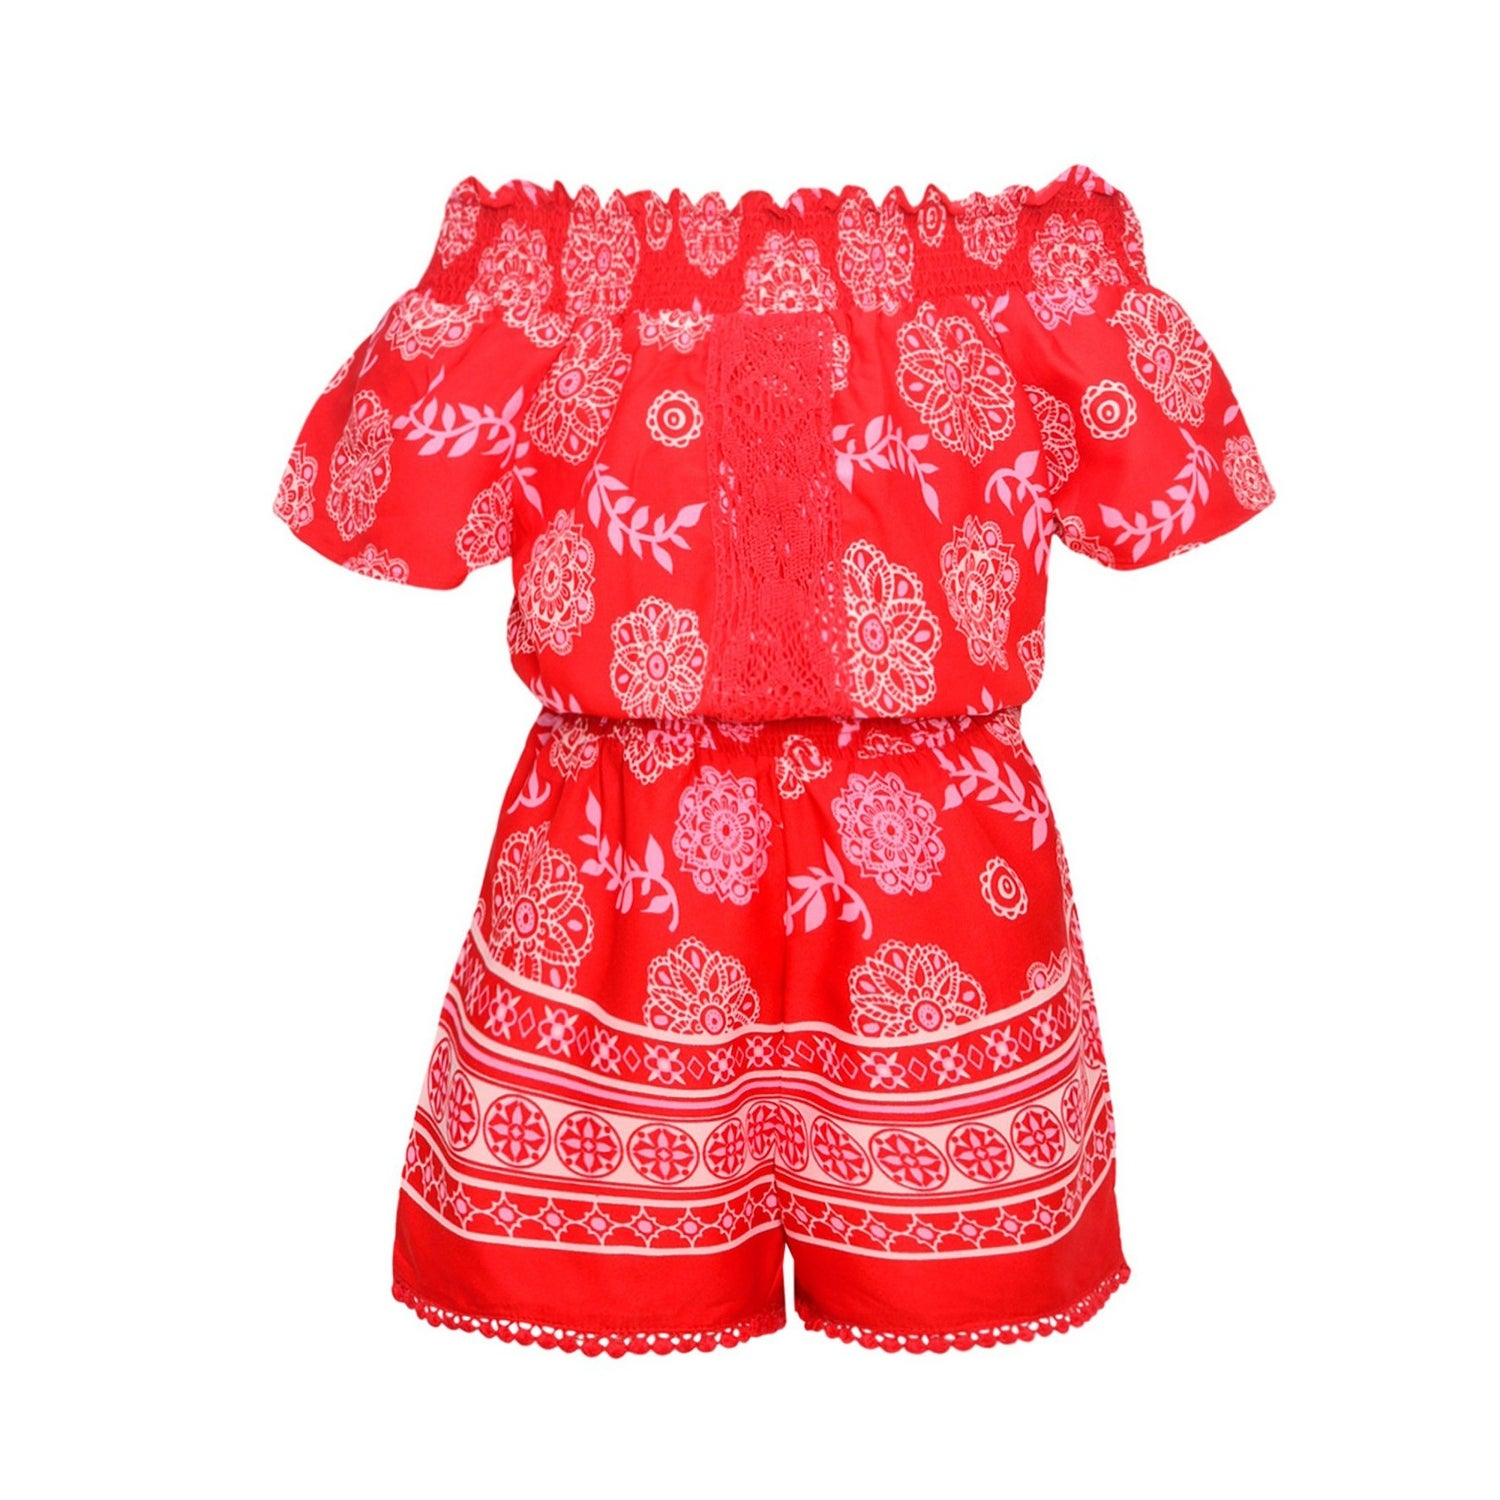 b9bb1654d3d64 Girls' Clothing | Find Great Children's Clothing Deals Shopping at Overstock